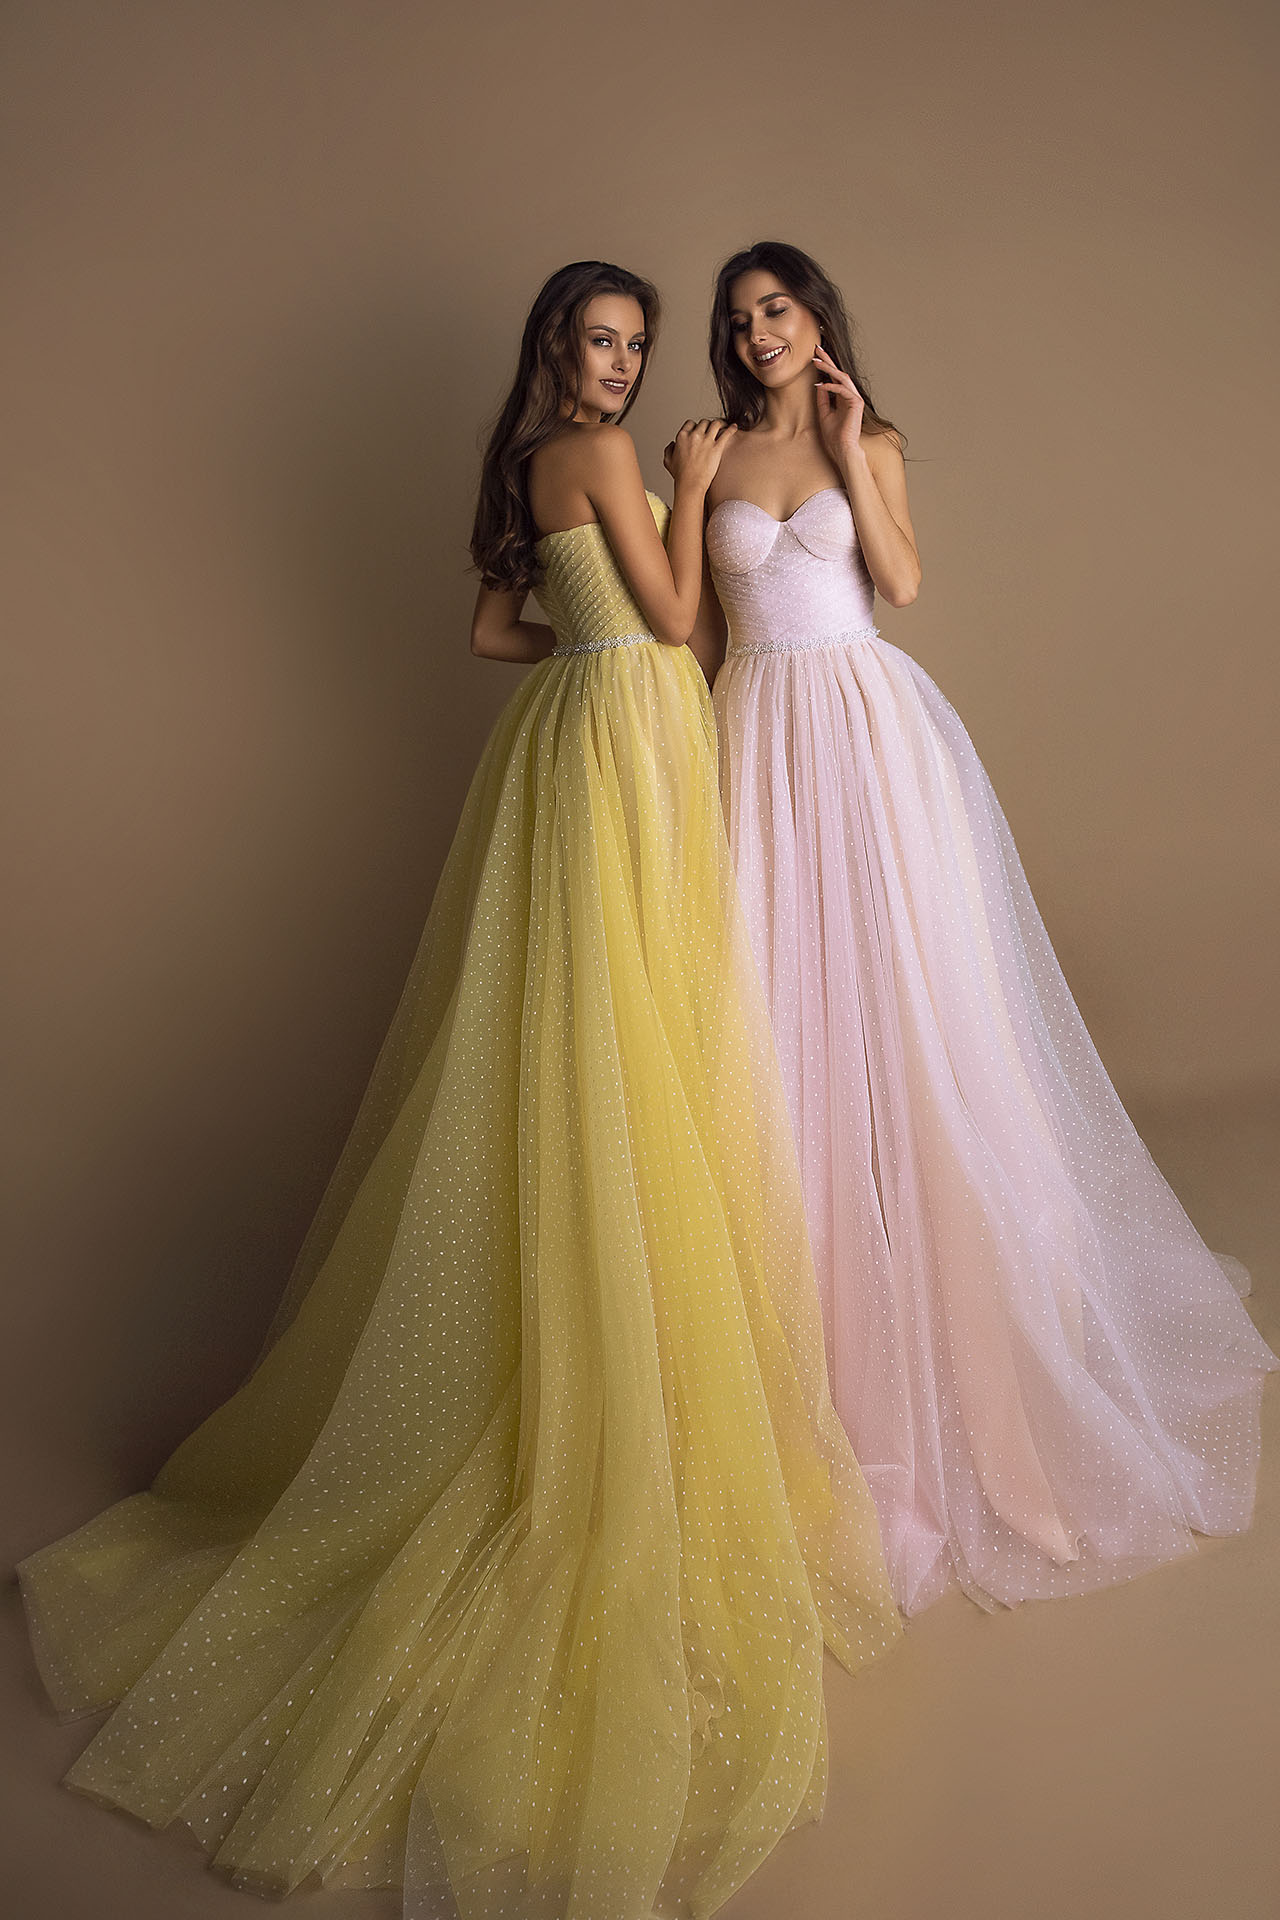 Evening Dresses 1605 Silhouette  A Line  Color  Pink  Yellow  Neckline  Sweetheart  Sleeves  Off the Shoulder Sleeves  Train  No train - foto 2